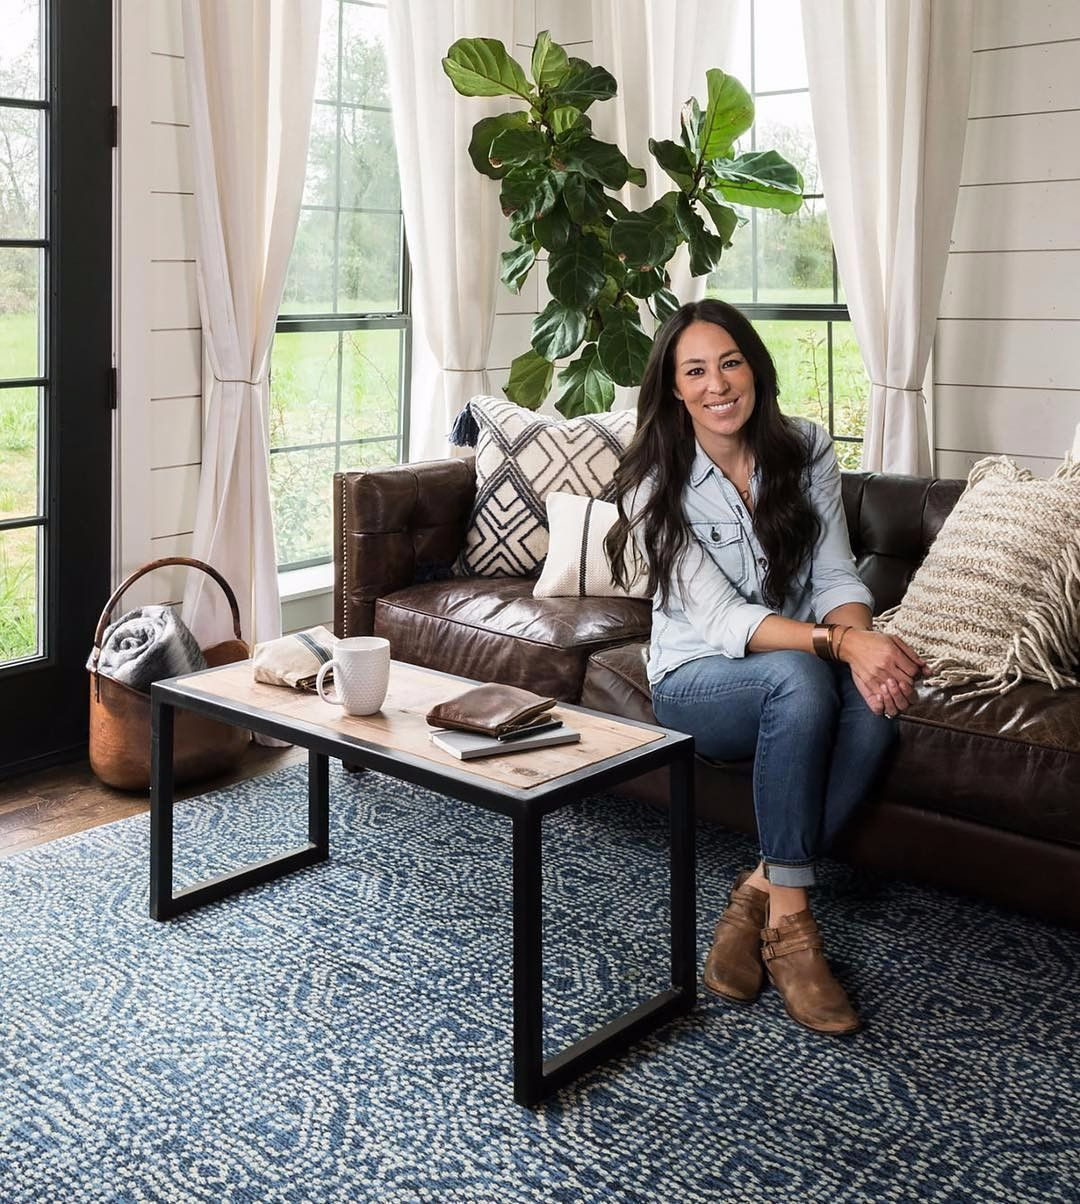 12 Design Elements You Absolutely Must Have To Get The Look Of Joanna Gaines S Home Brown Living Room Brown Living Room Decor Brown Couch Living Room